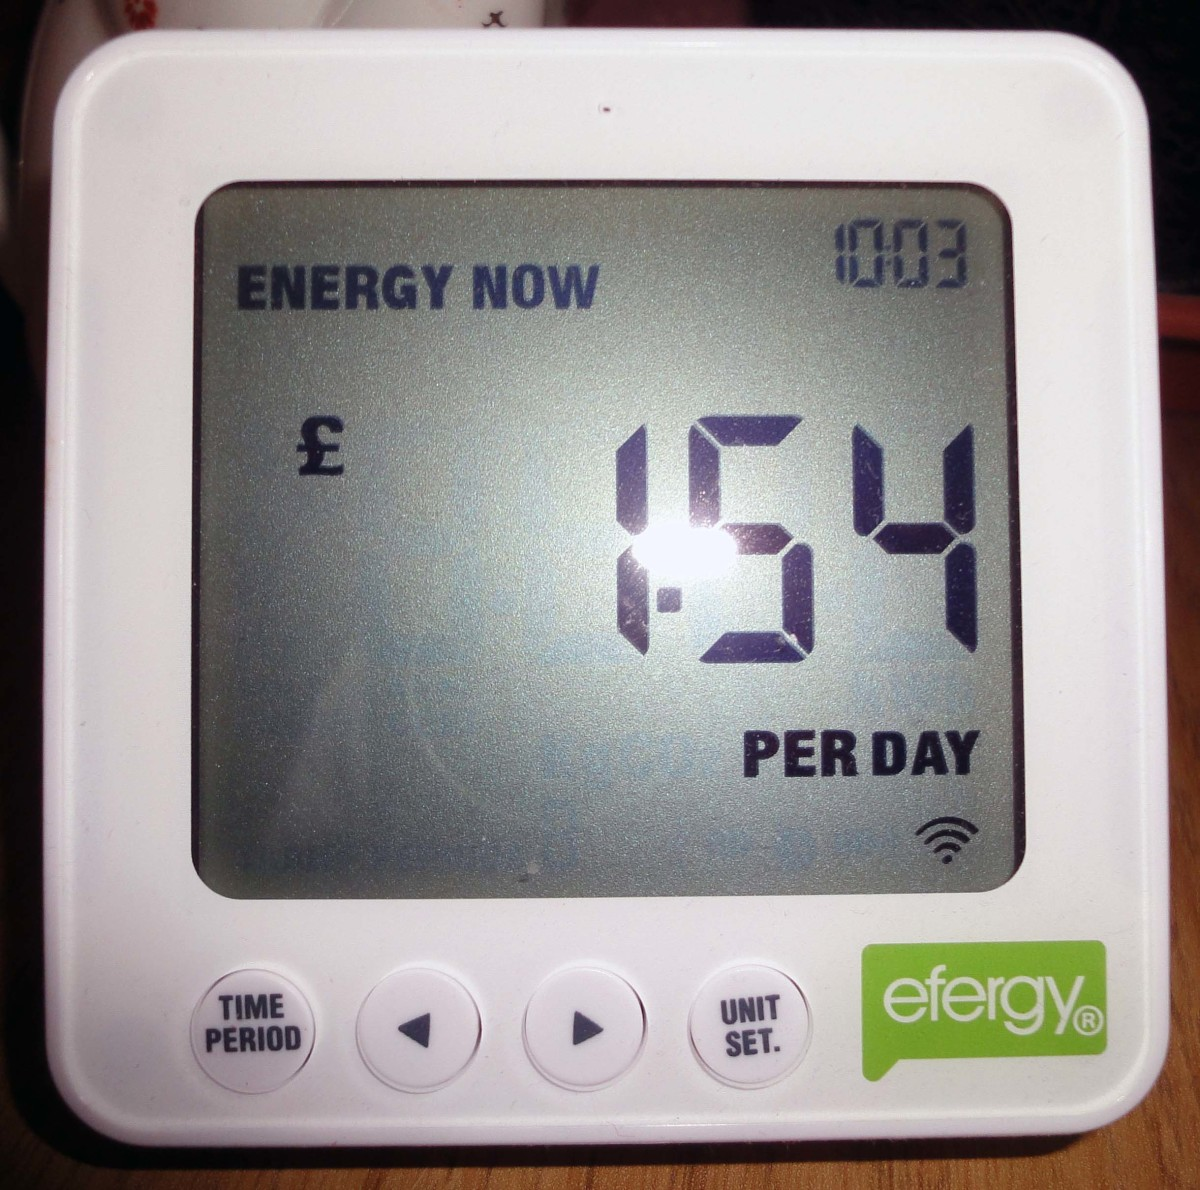 As at power usage when computer and bedroom TV are on with fridge and freezers.